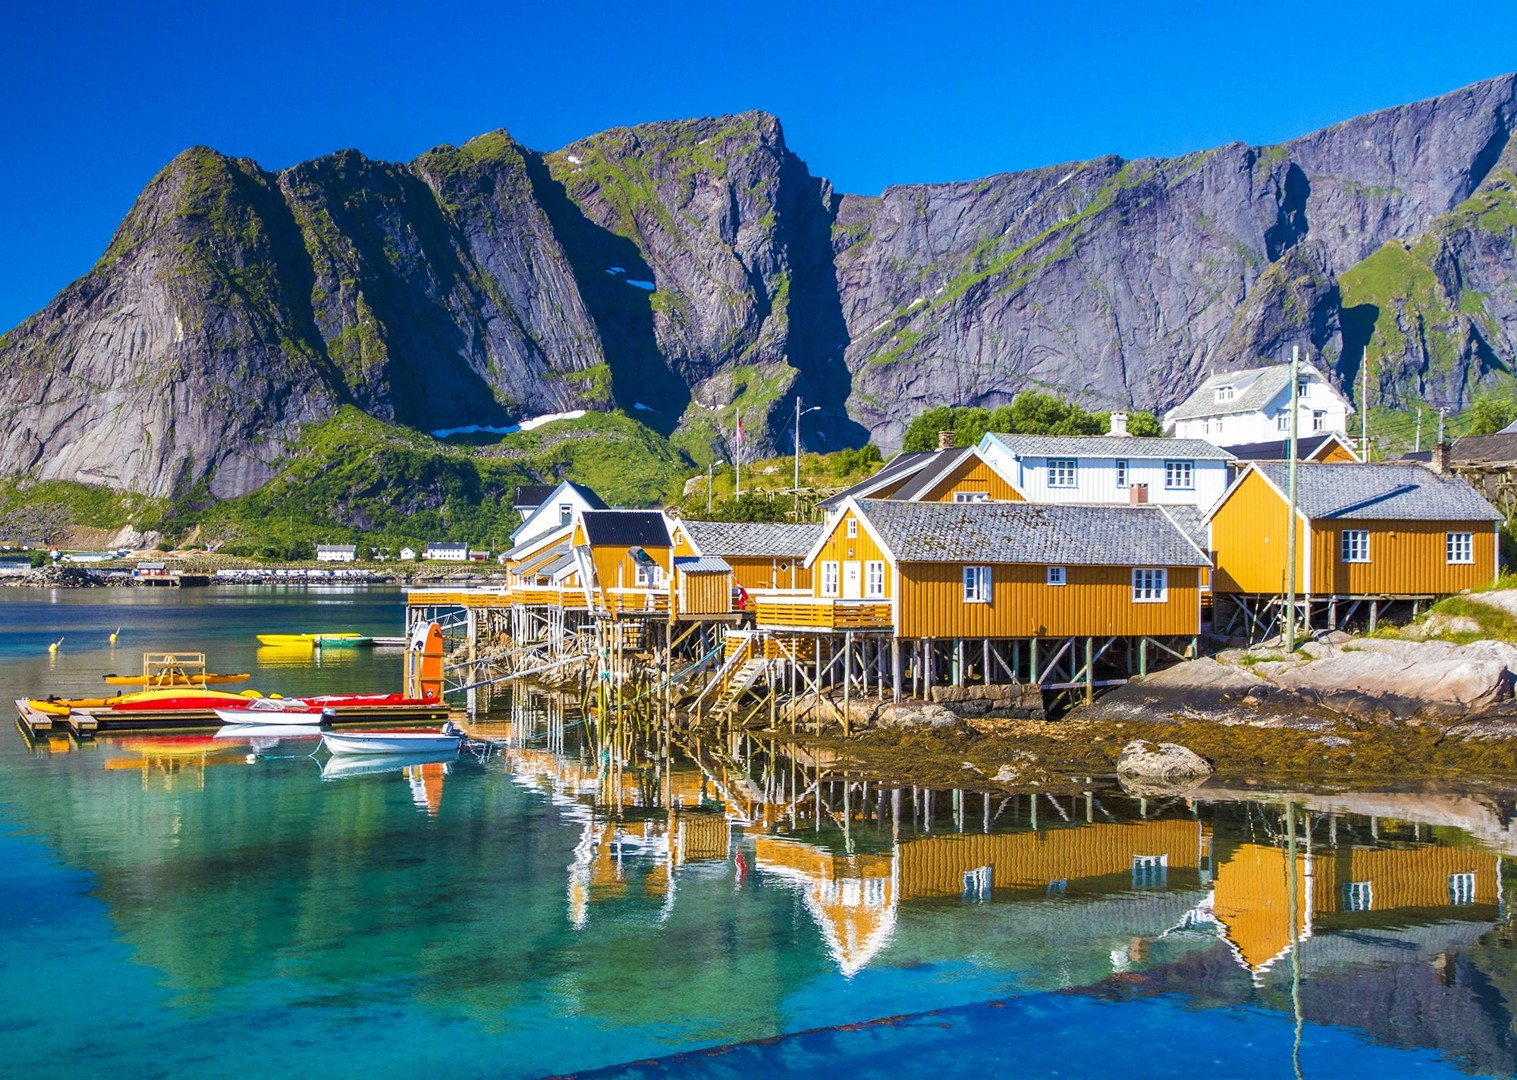 culture-local-fishing-villages-norway-relaxing-immerse-cycling-holiday.jpg - Norway - Lofoten Islands - Self-Guided Leisure Cycling Holiday - Leisure Cycling